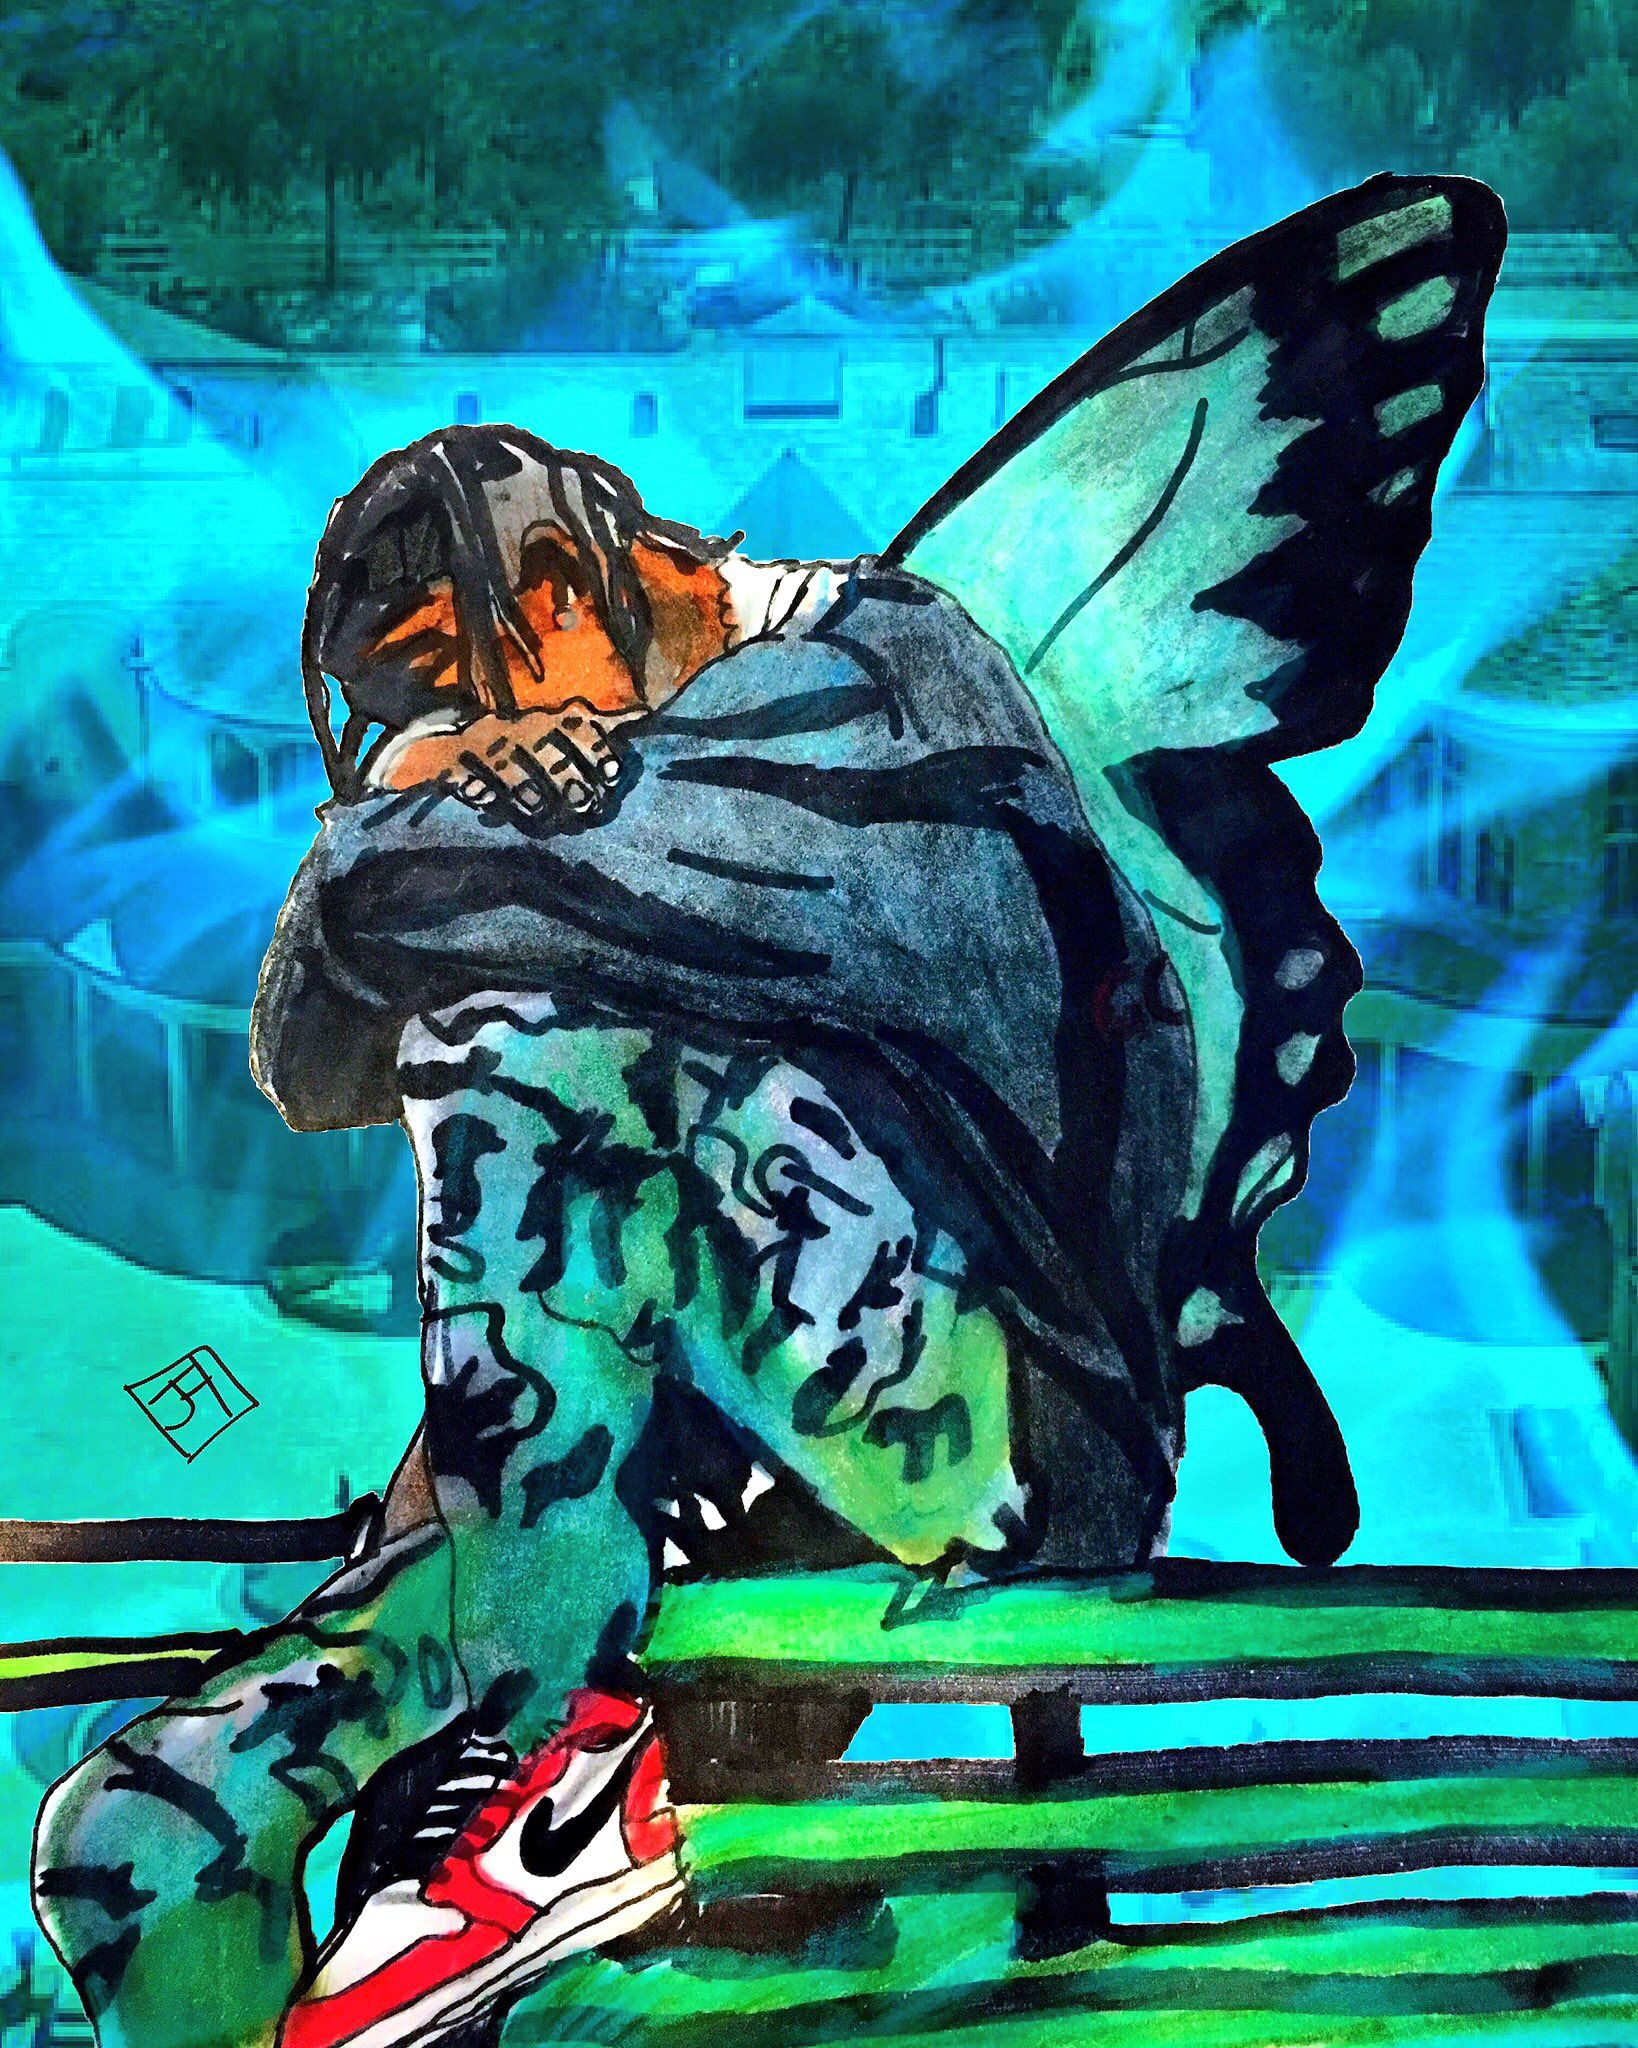 dcc74591008a For this life I cannot change Hidden hills deep off in the mains Travis  scott - Butterfly Effect